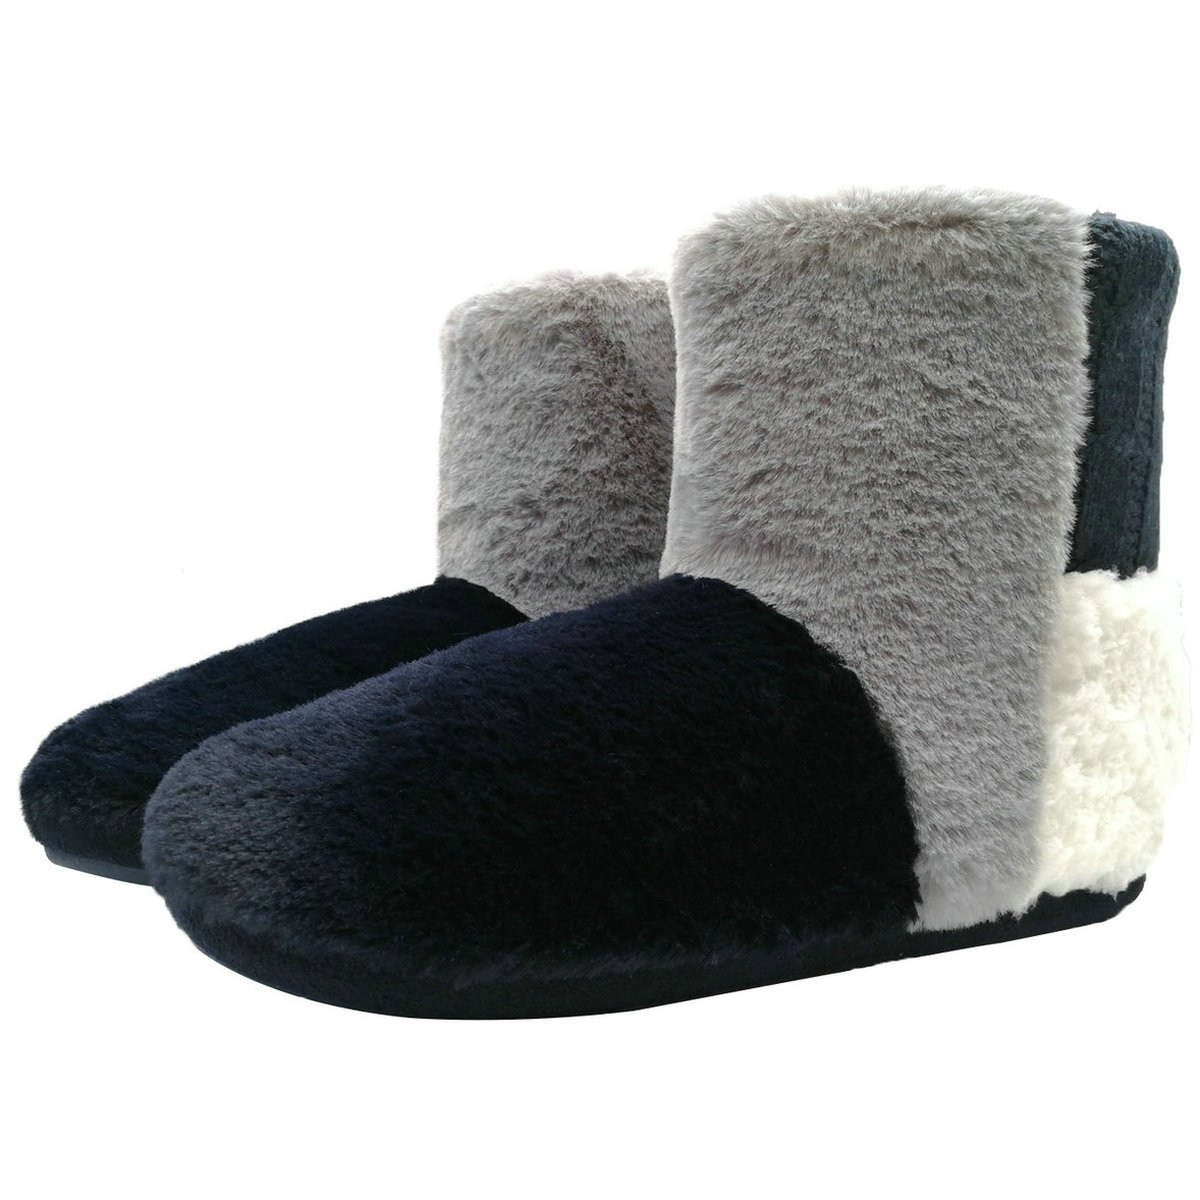 ONCAI Fluffy Faux Fur Slipper Boots Women Soft Cozy Memory Foam Midcalf Booties Indoor House Pull on Shoes